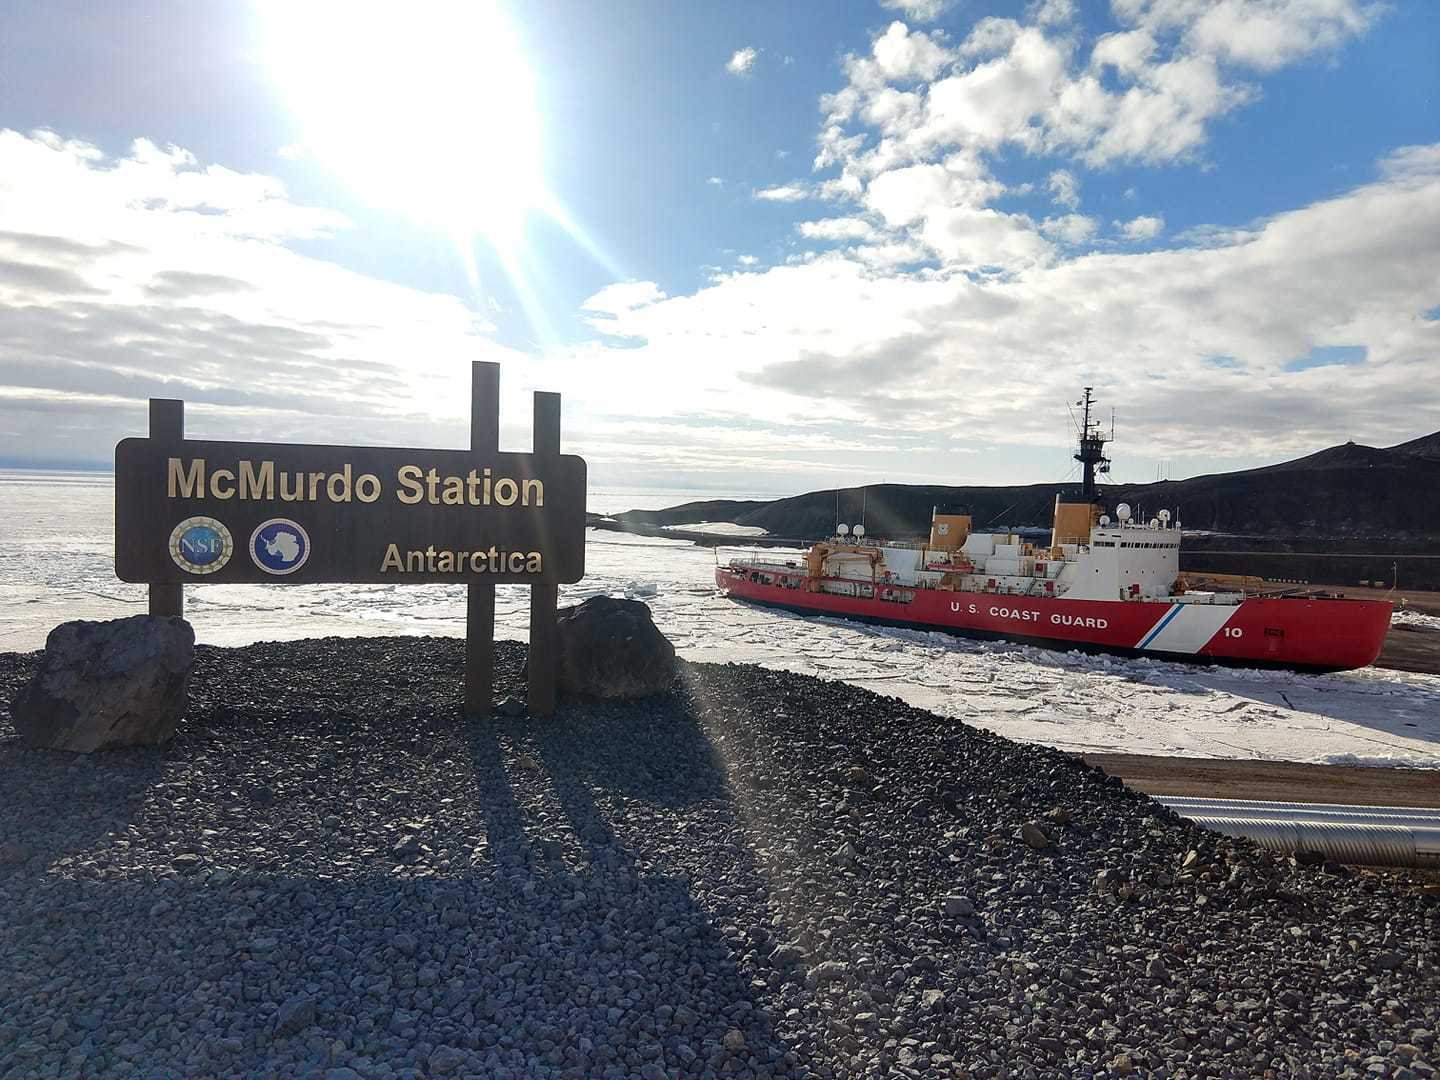 Coast Guard Cutter Polar Star at McMurdo Station